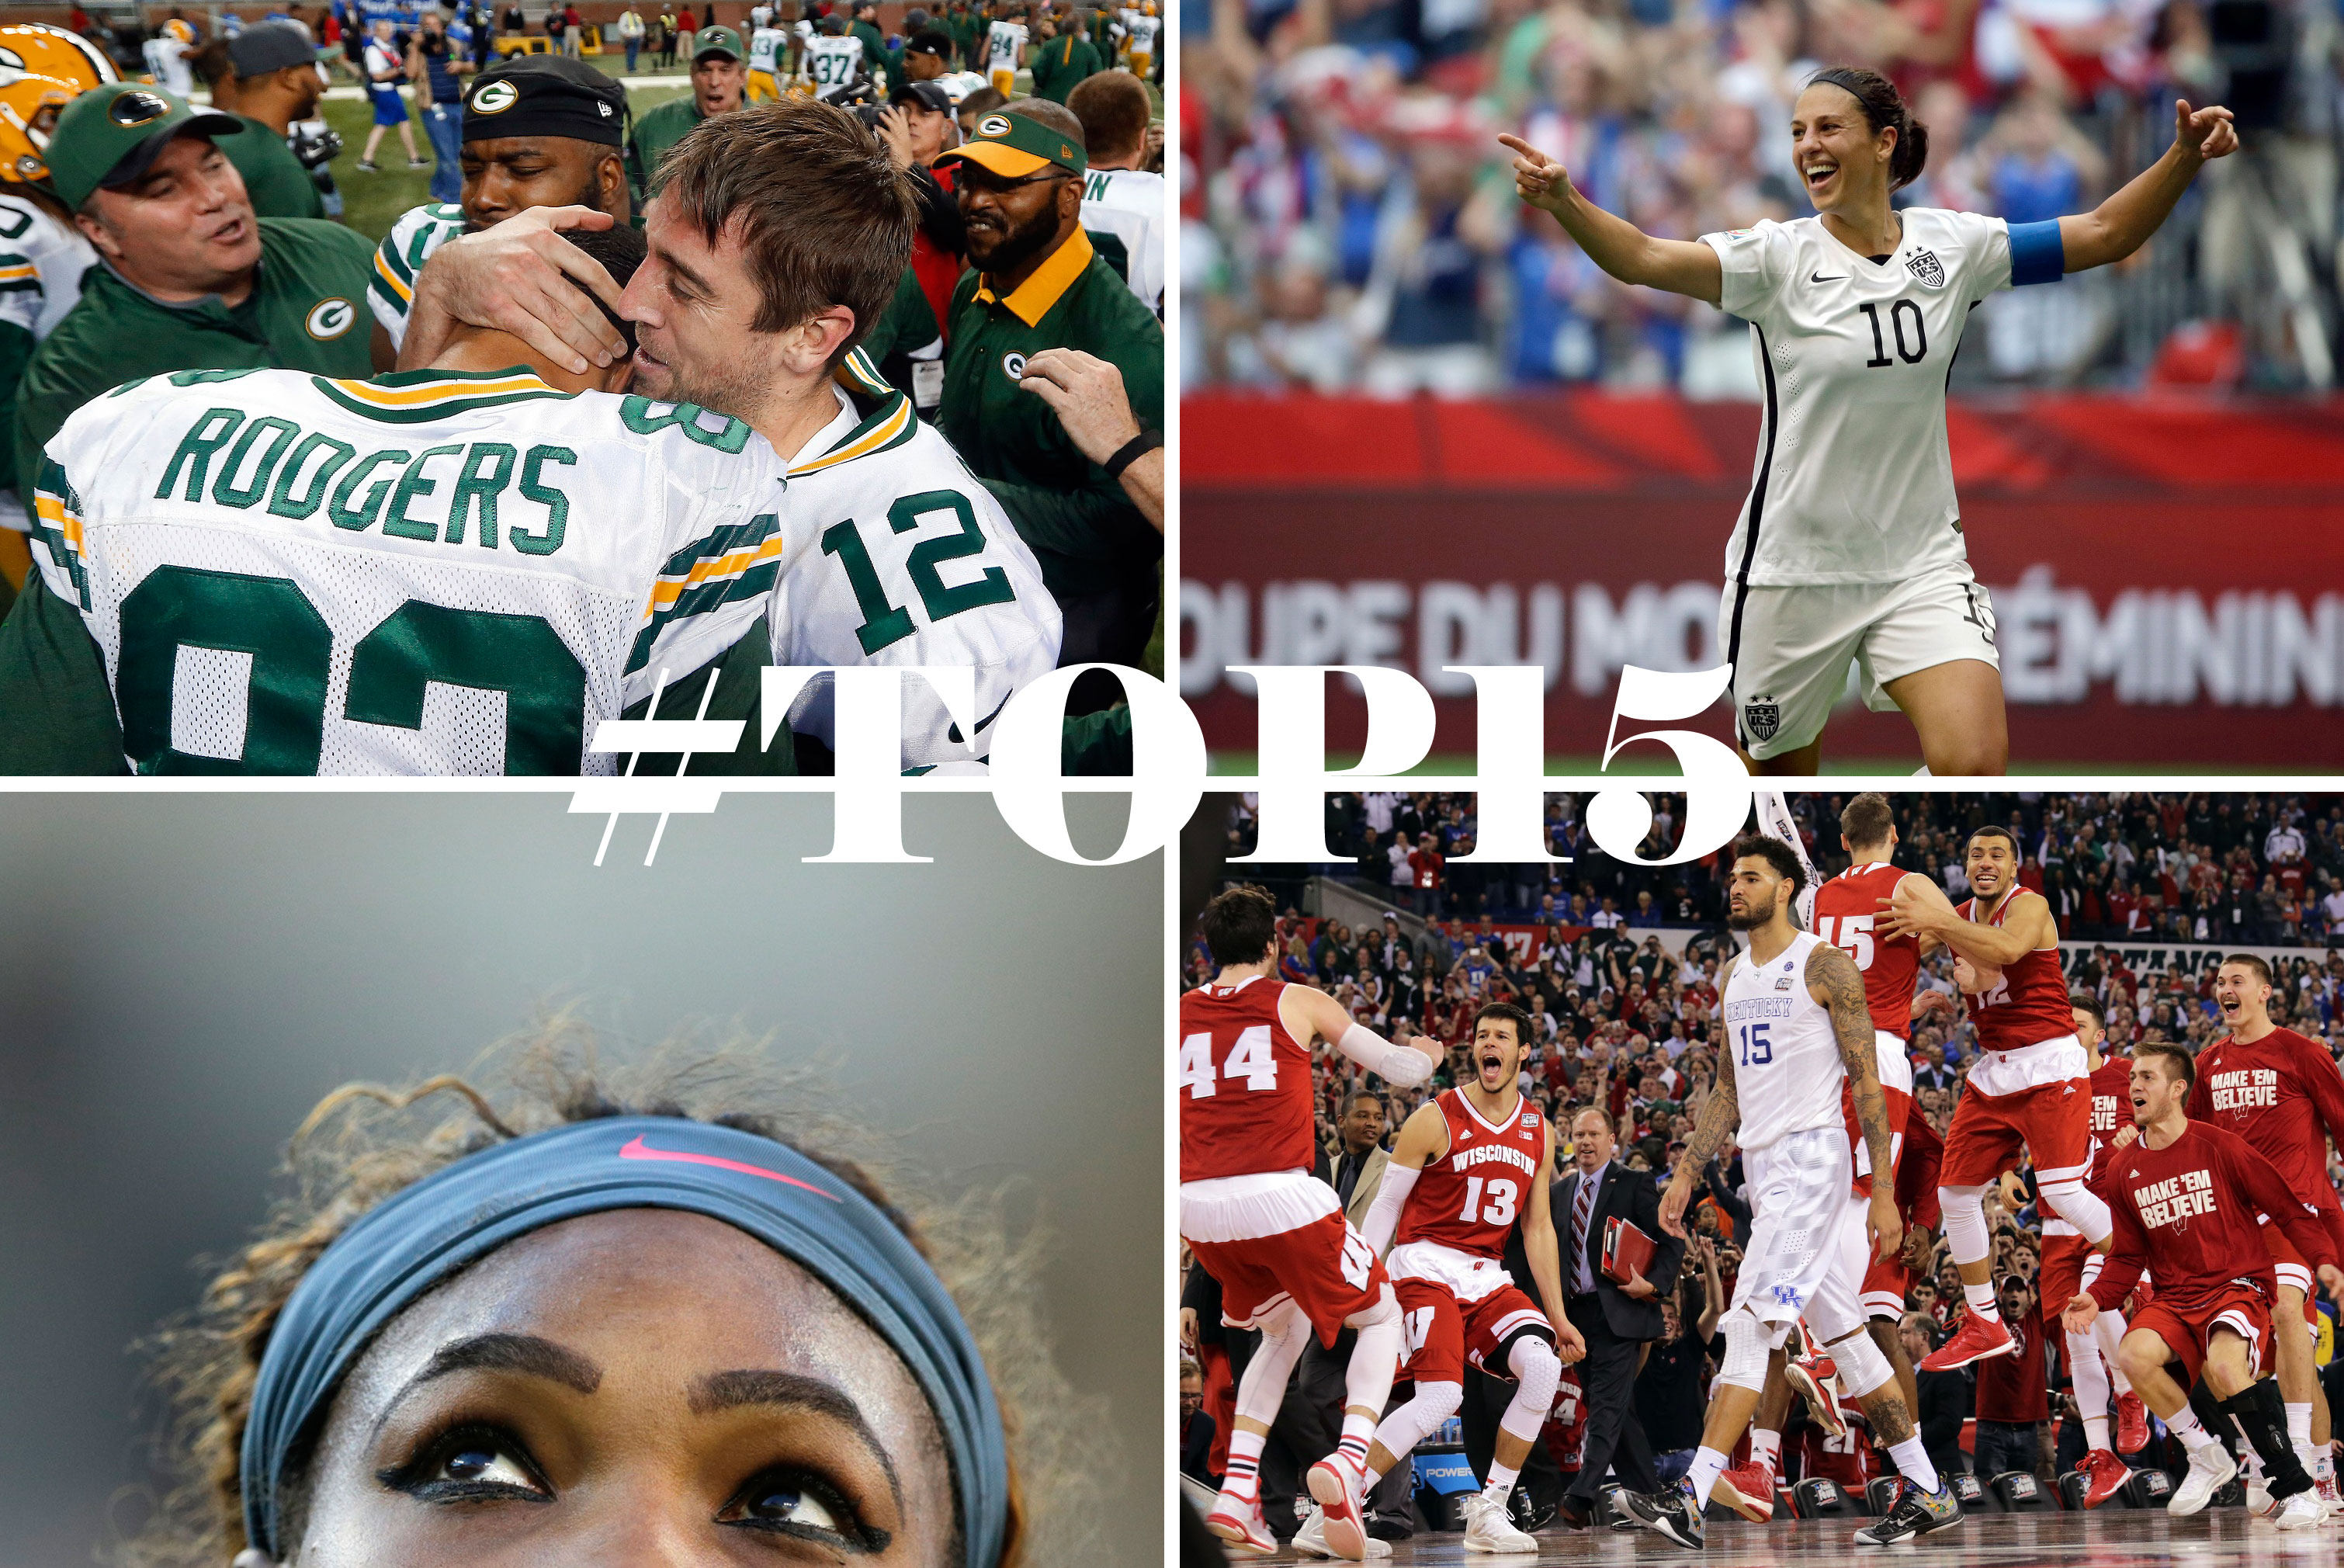 #TOP15 sports moments of 2015